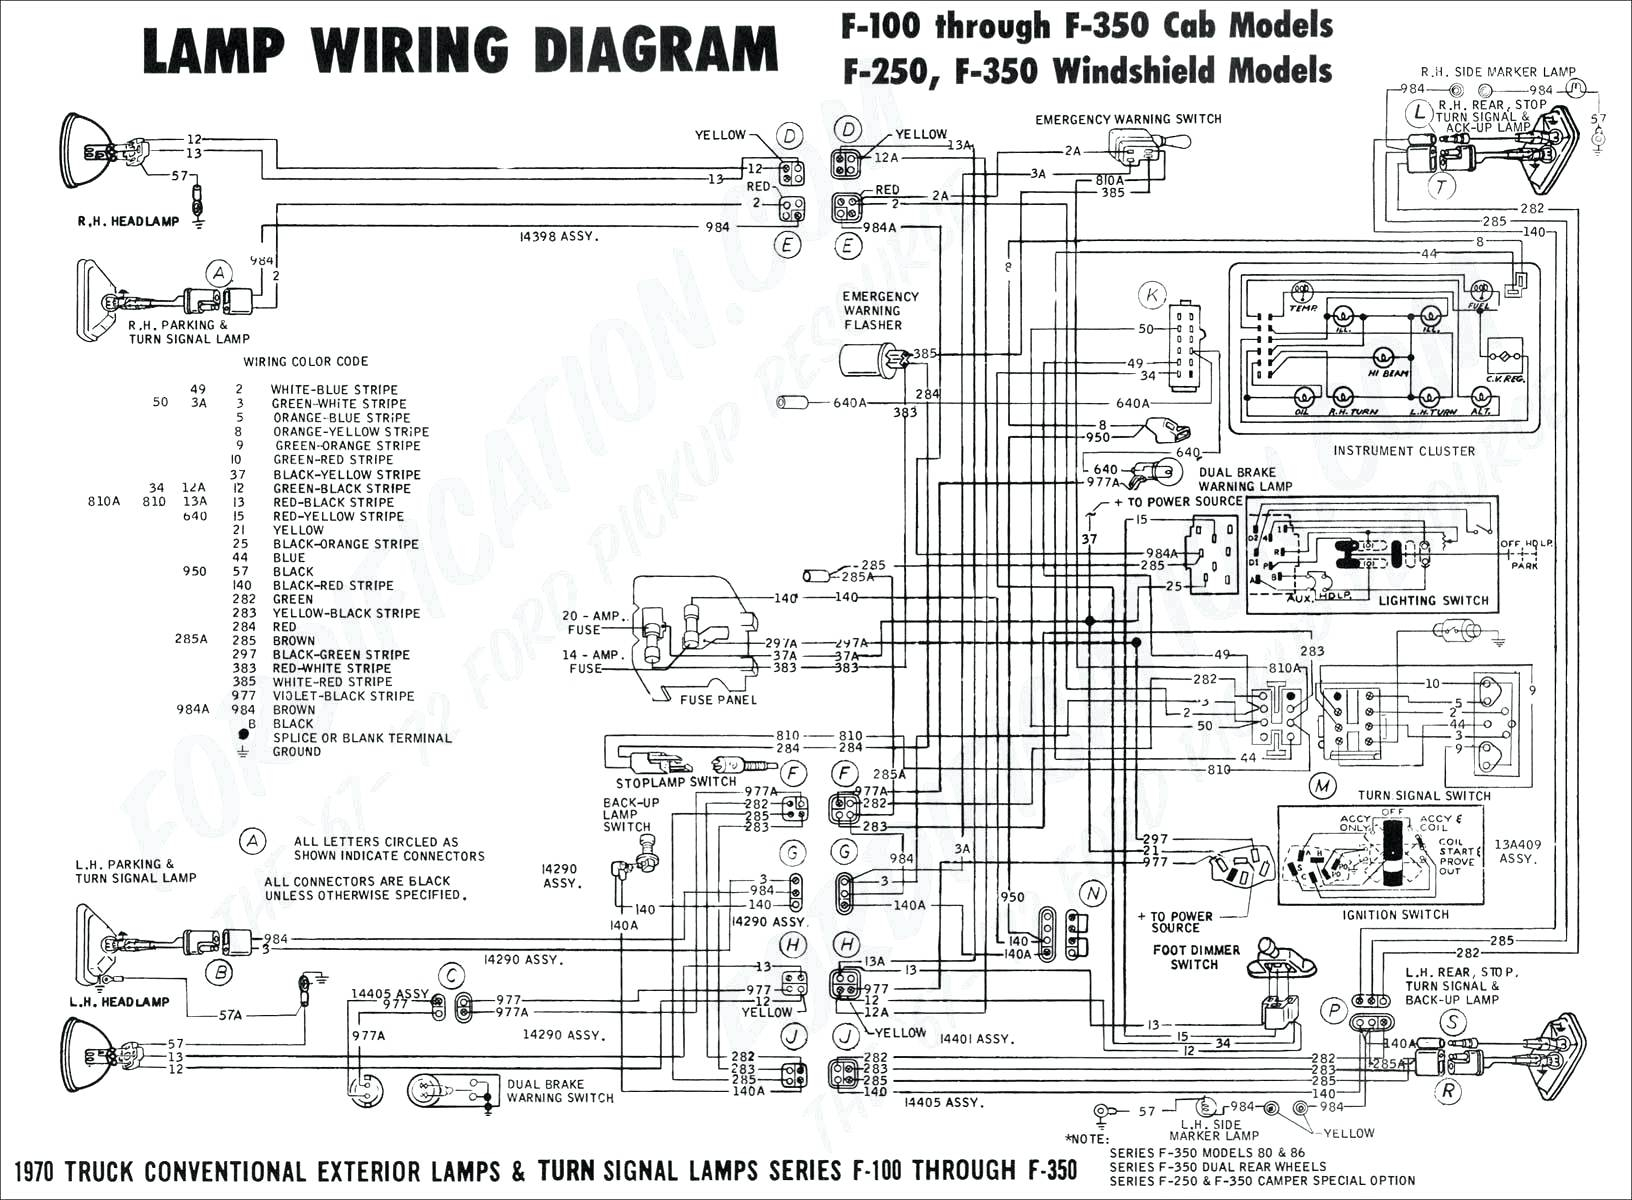 Dodge Ram Tail Light Wiring Diagram on 2001 dodge ram 1500 tail light wiring diagram, 2006 dodge ram 1500 tail light wiring diagram, 2004 dodge ram 1500 tail light wiring diagram, 2008 dodge ram 1500 tail light wiring diagram, 2004 dodge ram 3500 tail light wiring diagram, 2005 dodge ram 1500 tail light wiring diagram,